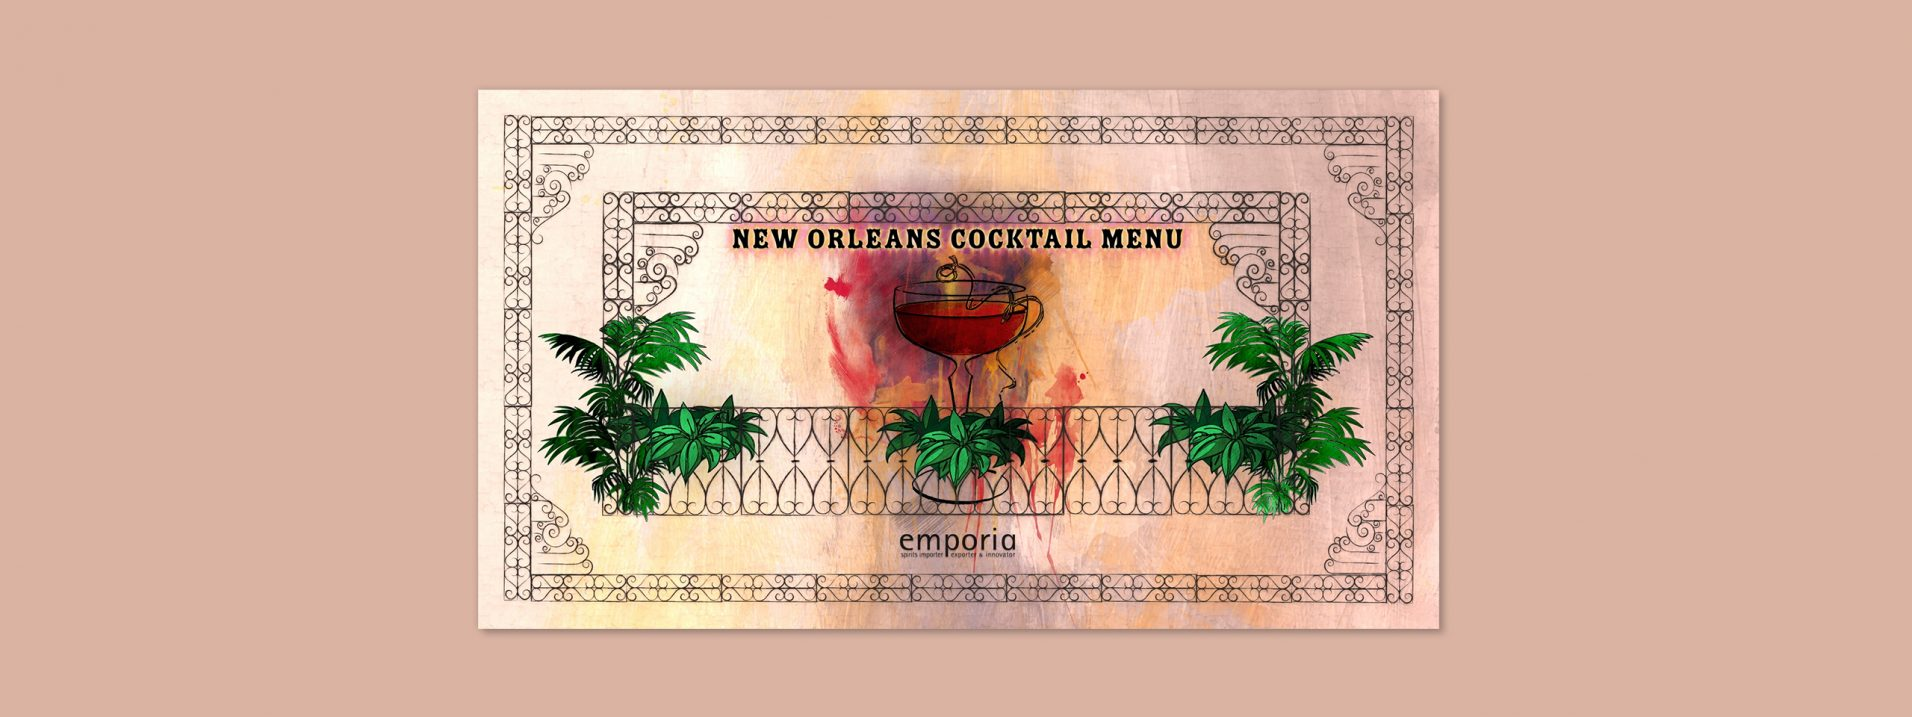 Emporia Brands - vieux carre Cocktail Menu designed by Dephined